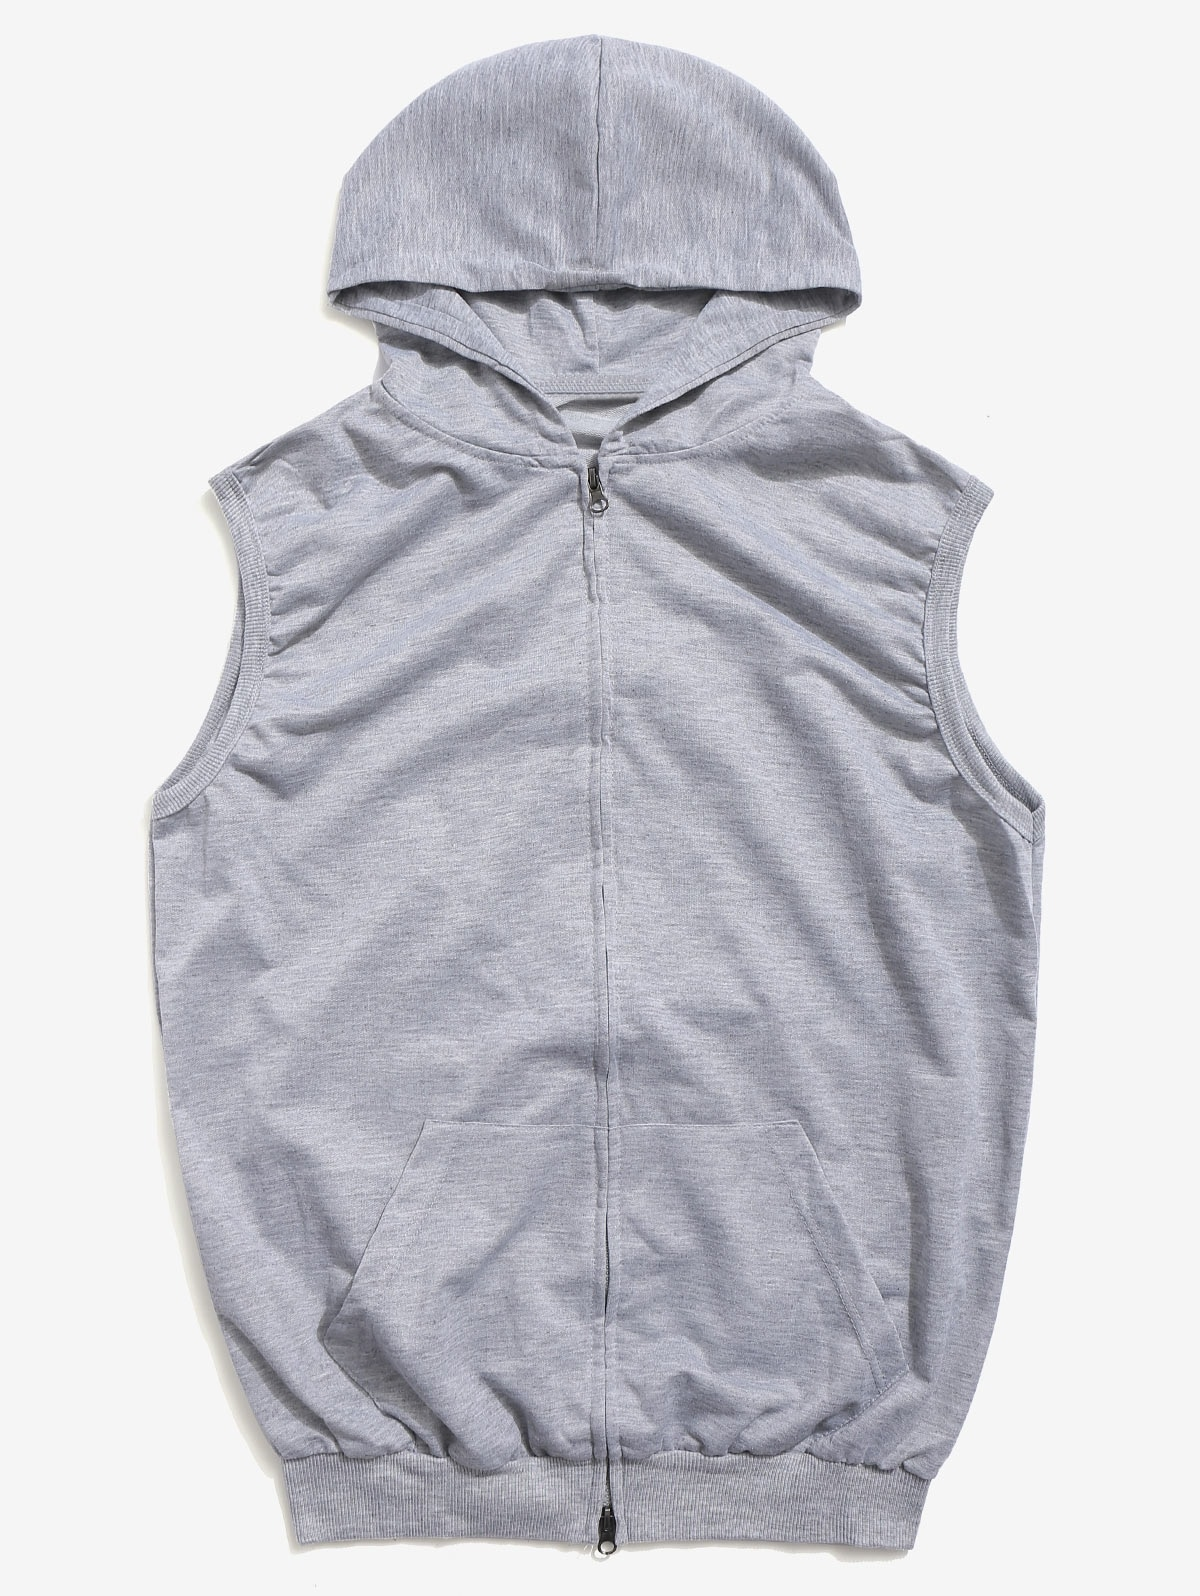 Solid Zipper Hooded Vest Jacket